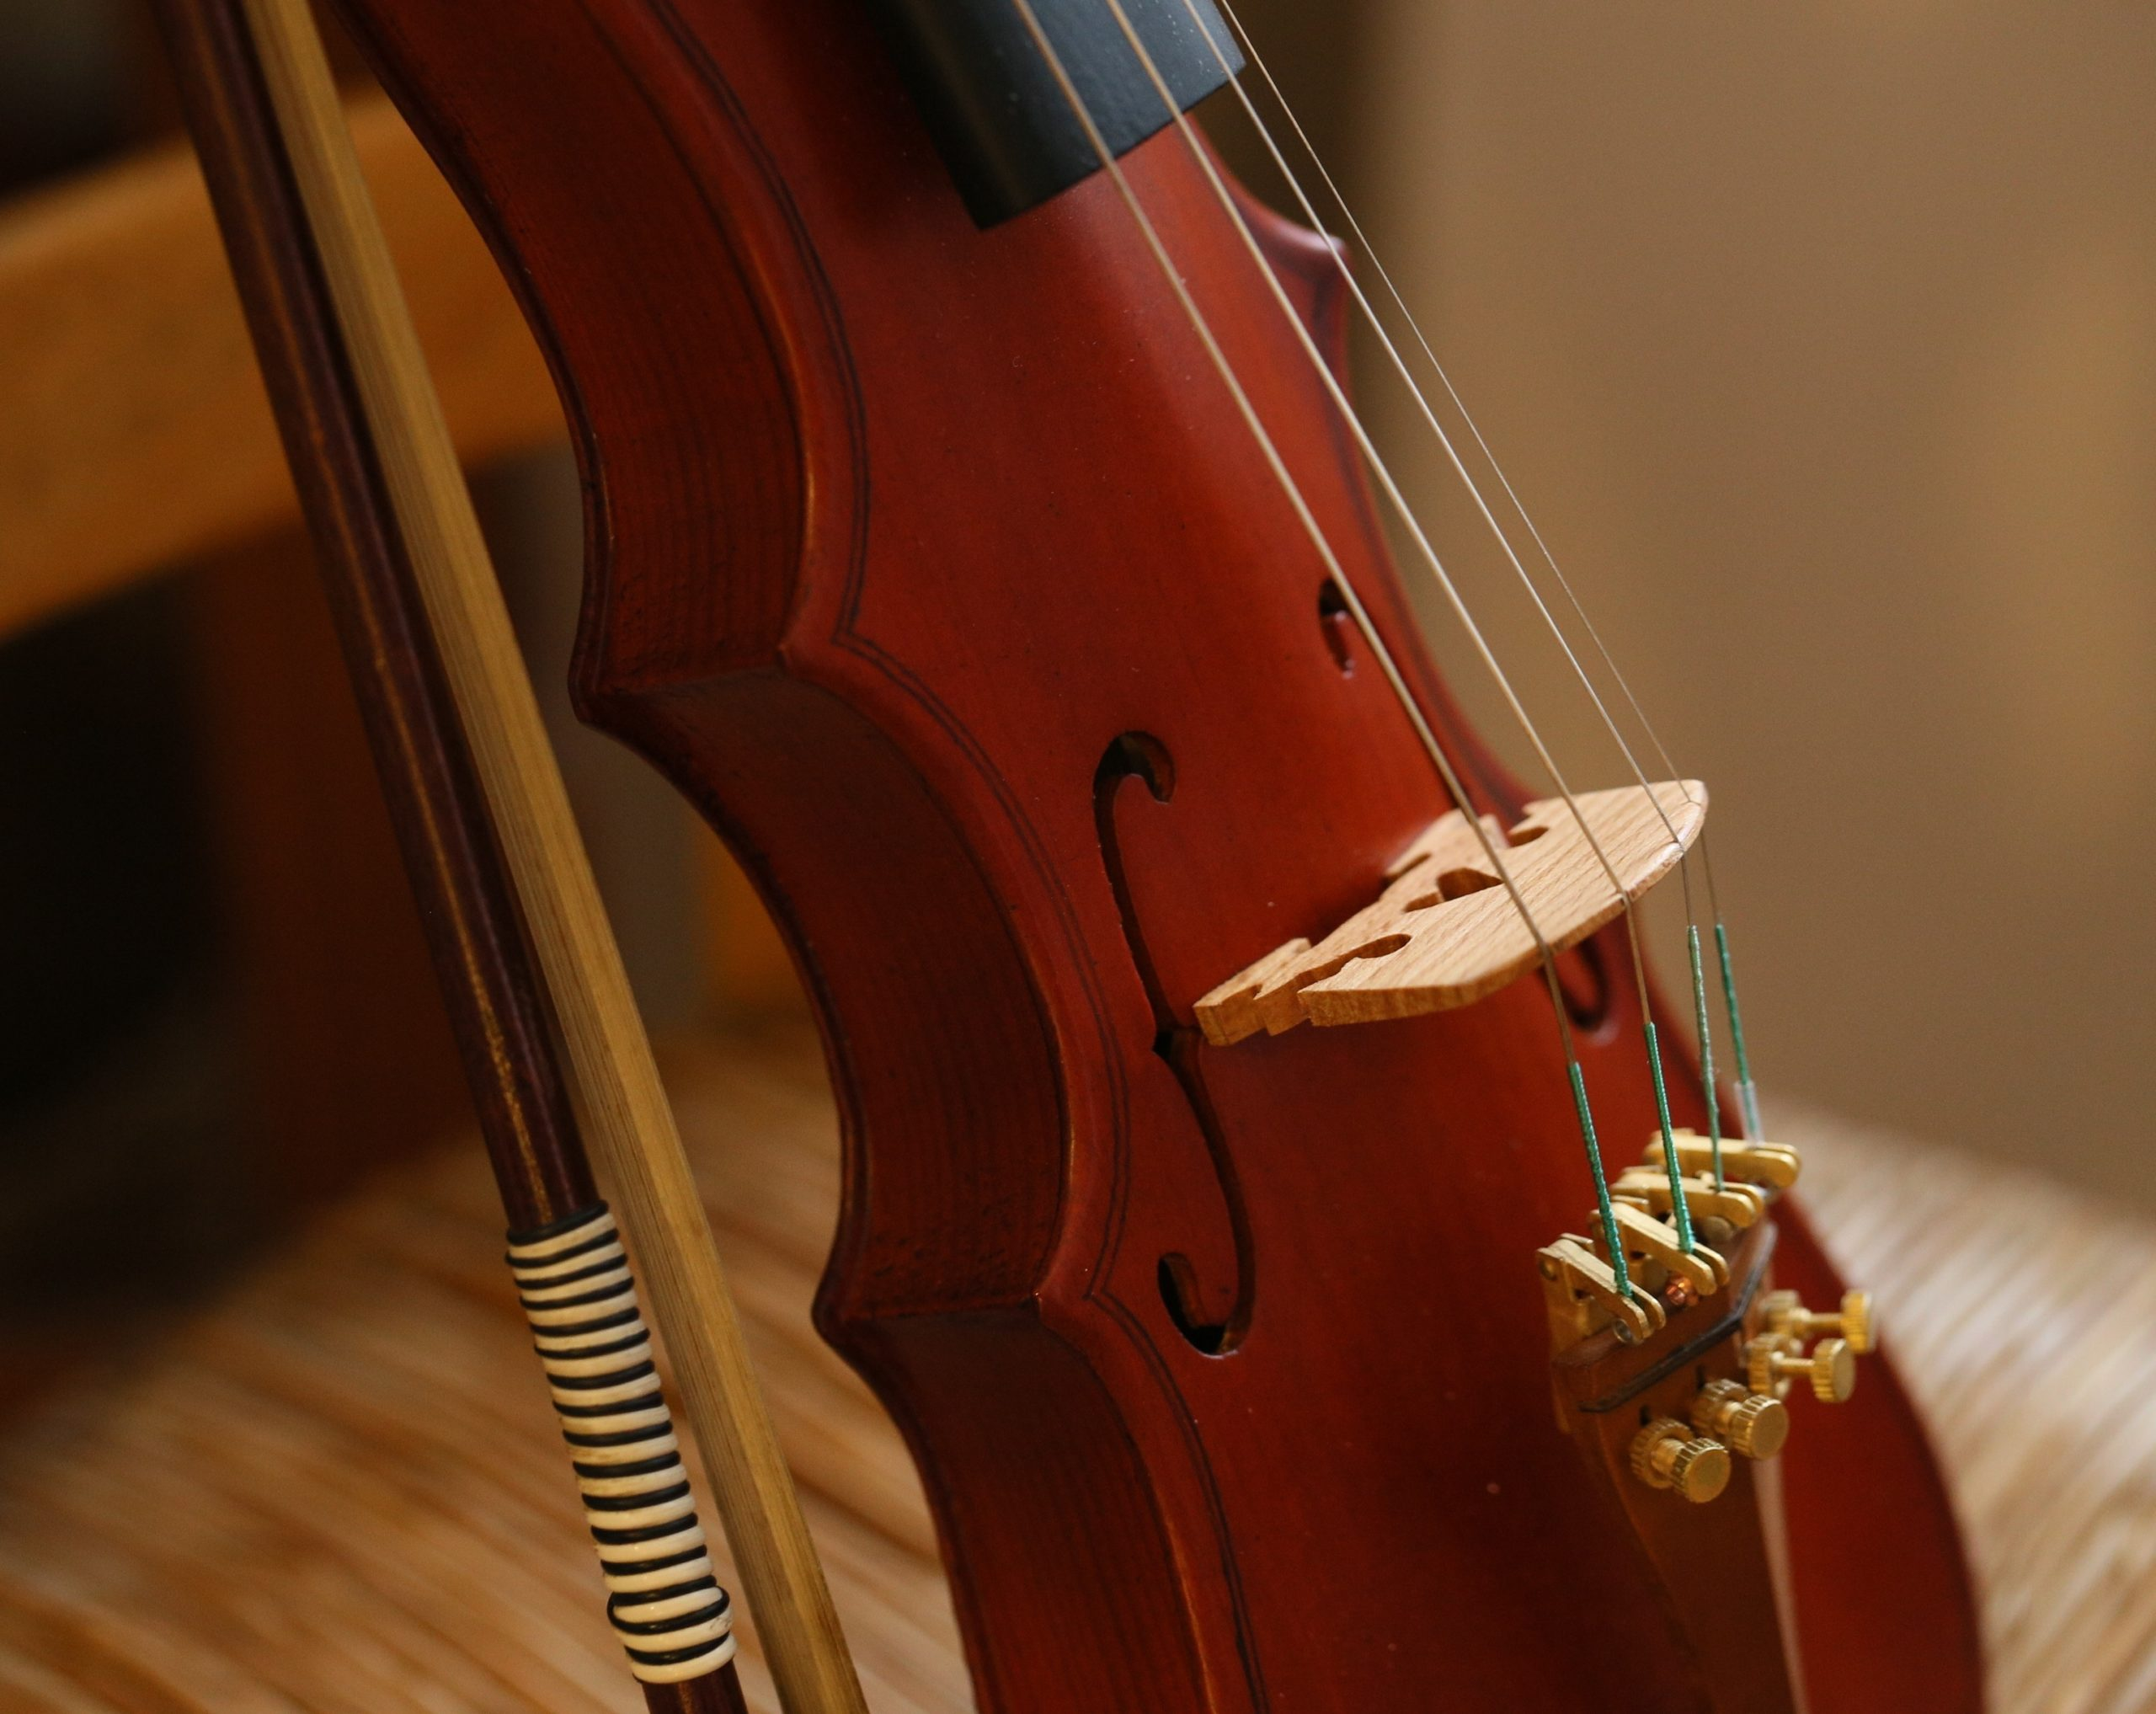 The-Most-Popular-Violin-Types-Pochette-Closeup-on-the-Sounbox